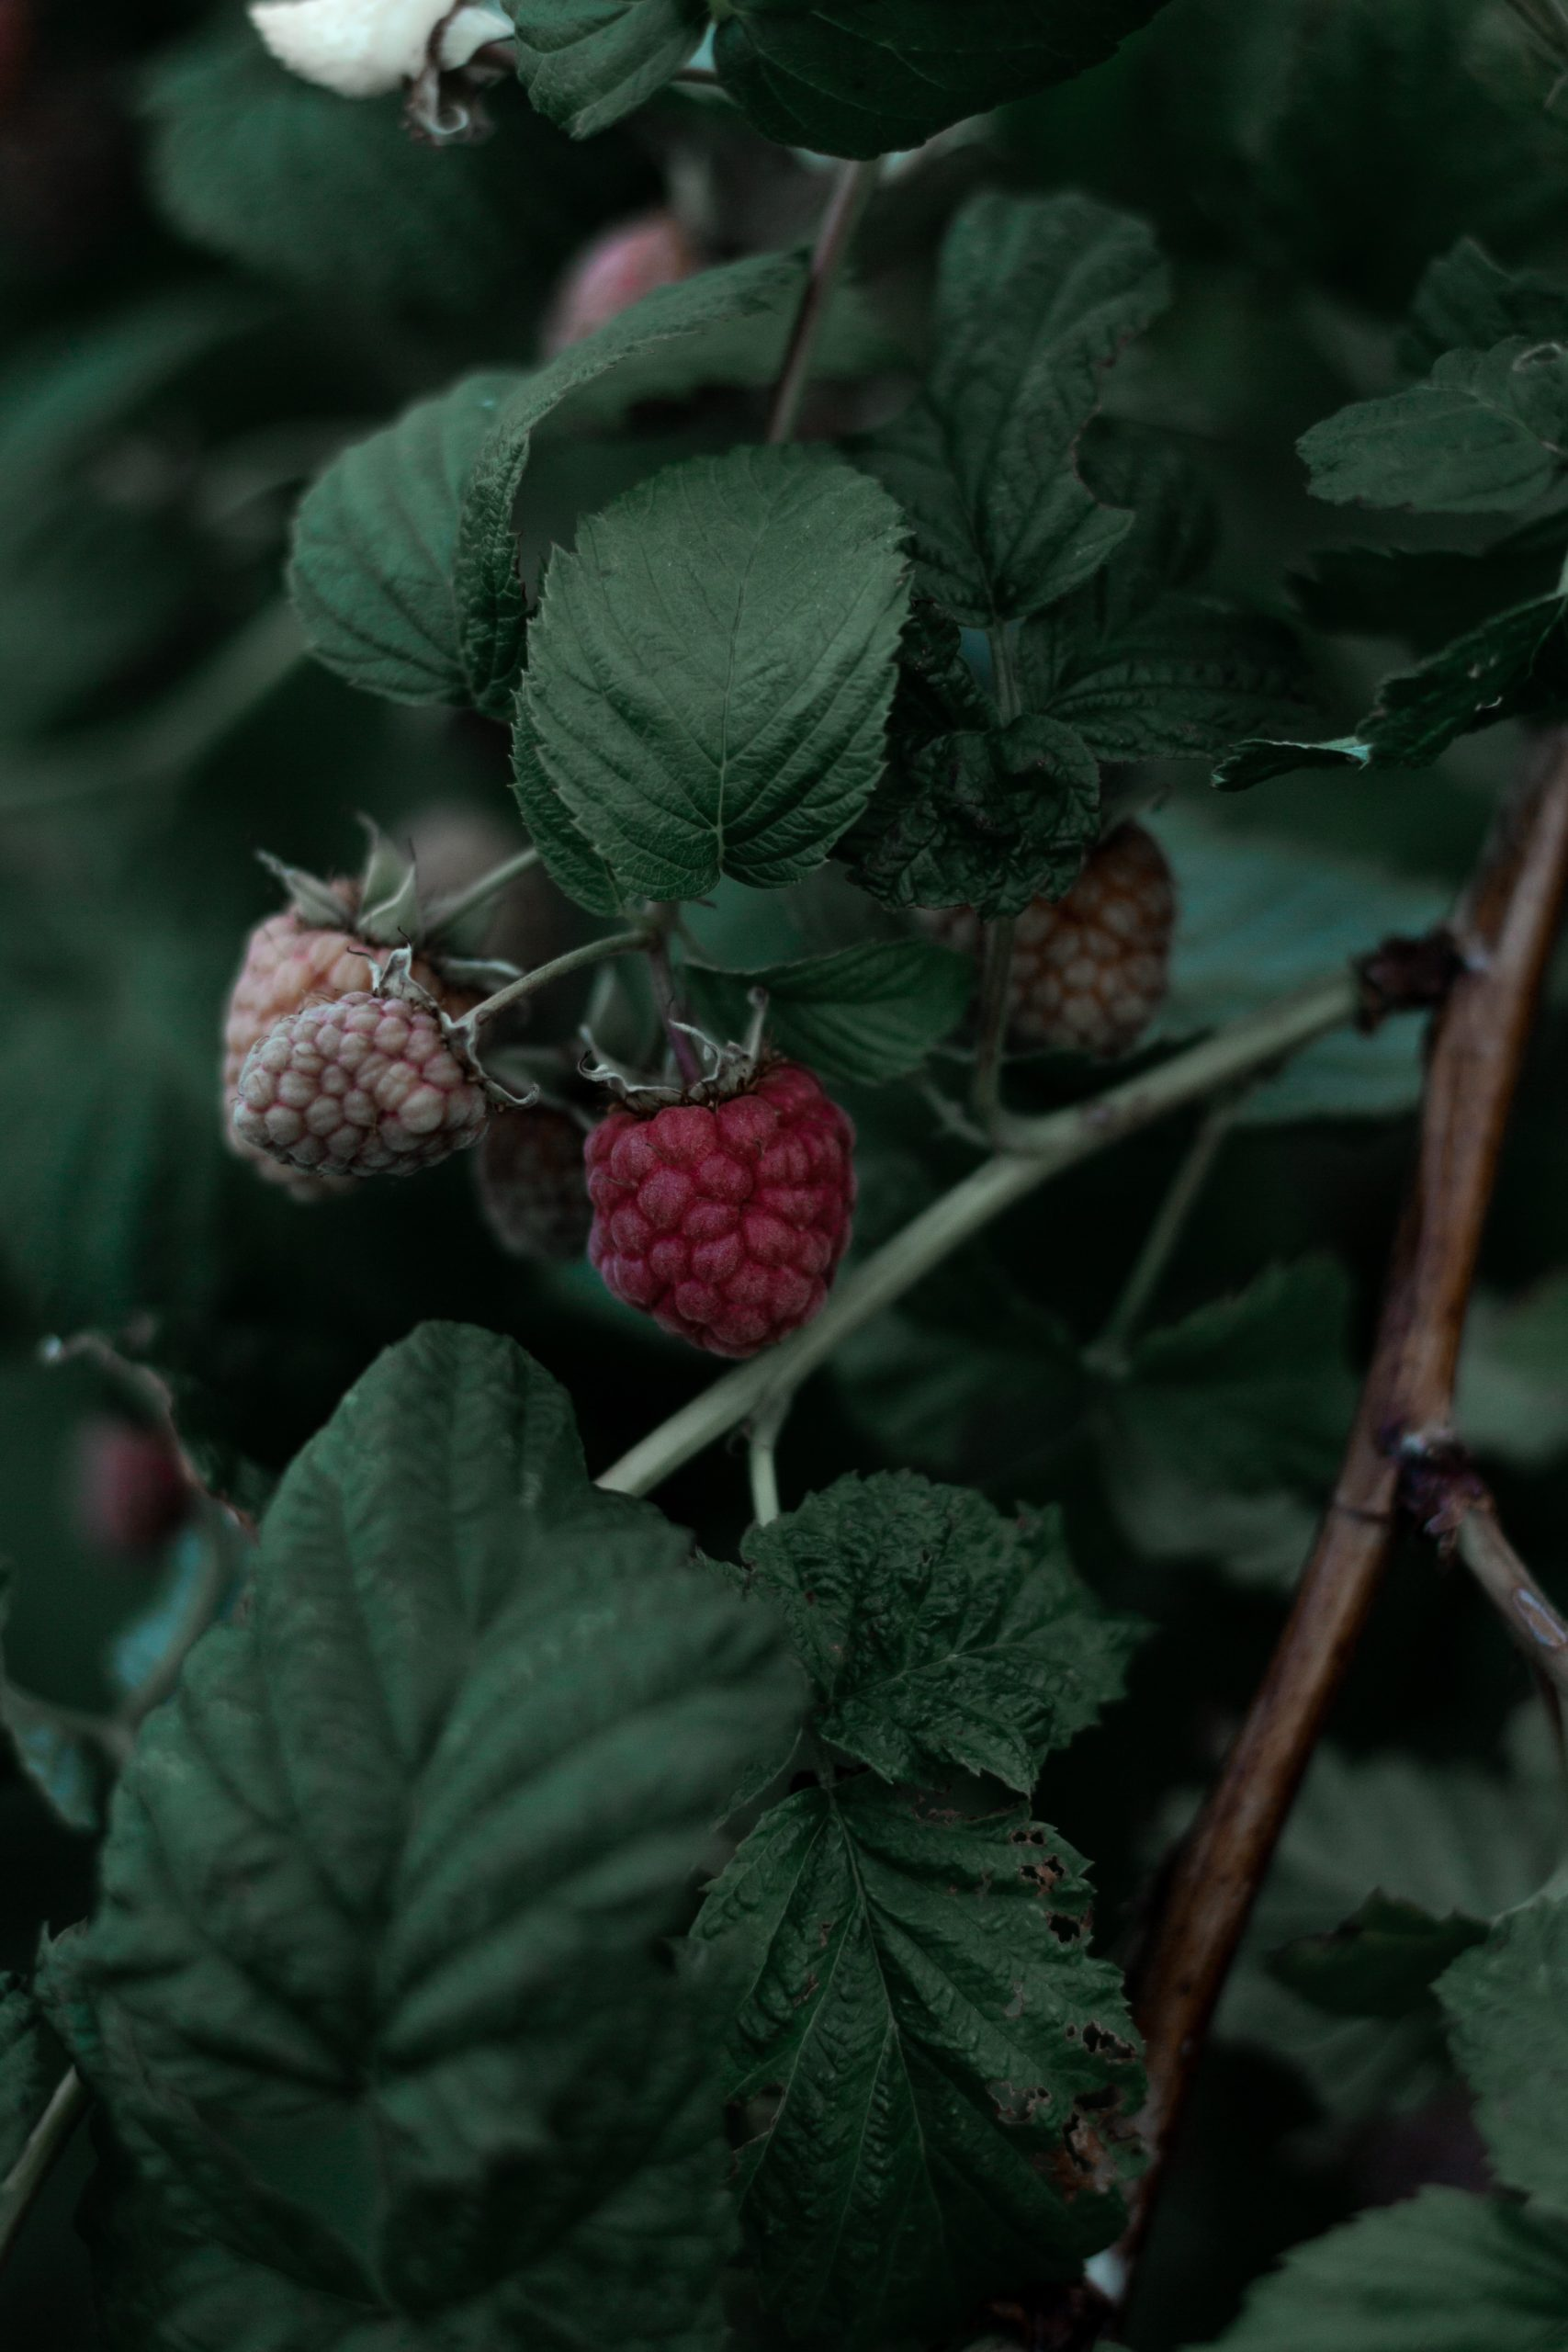 raspberry-unsplash